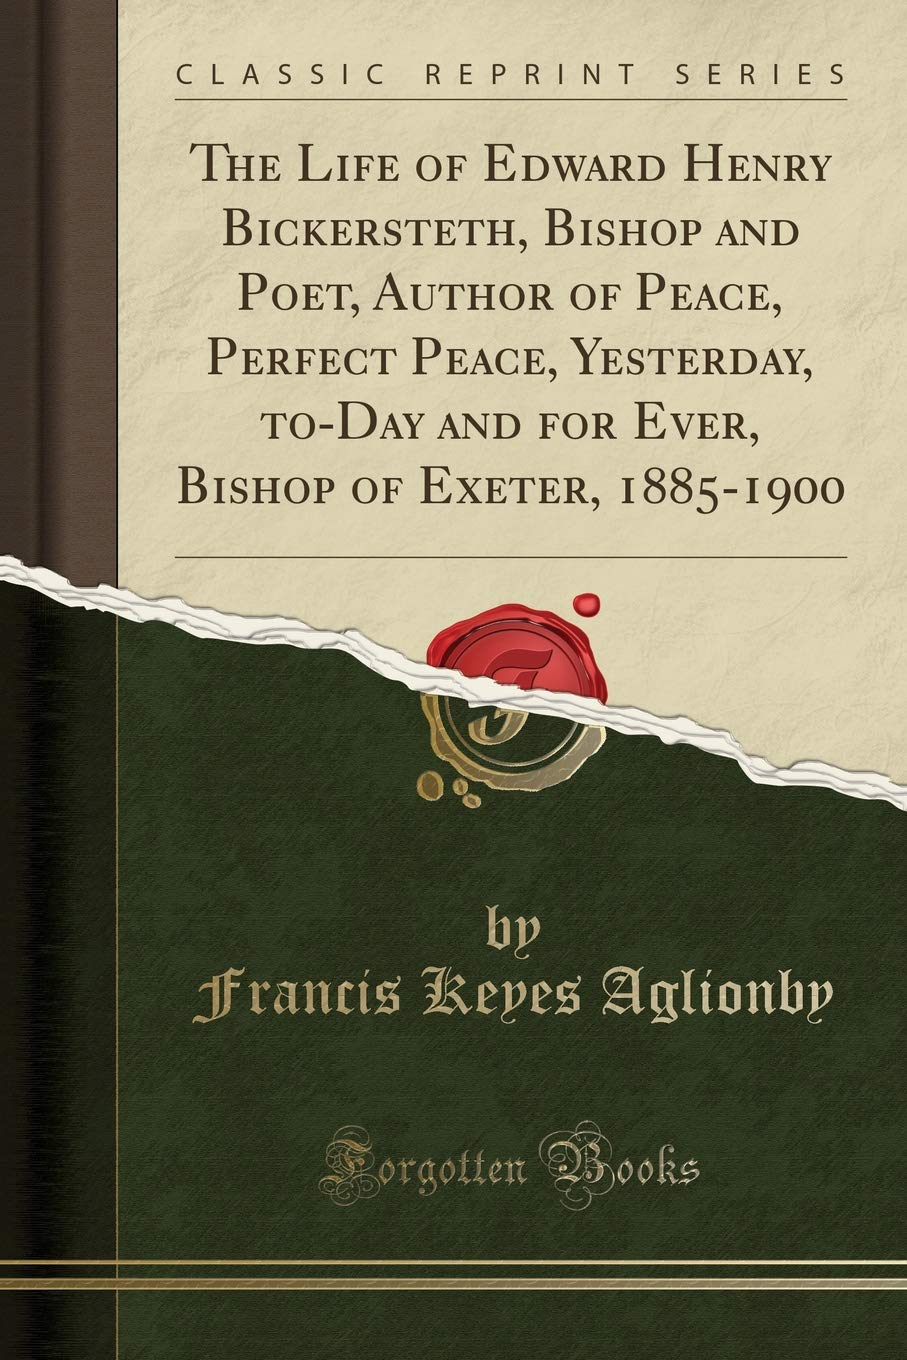 The Life of Edward Henry Bickersteth, Bishop and Poet, Author of Peace, Perfect Peace, Yesterday, to-Day and for Ever, Bishop of Exeter, 1885-1900 (Classic Reprint) ebook